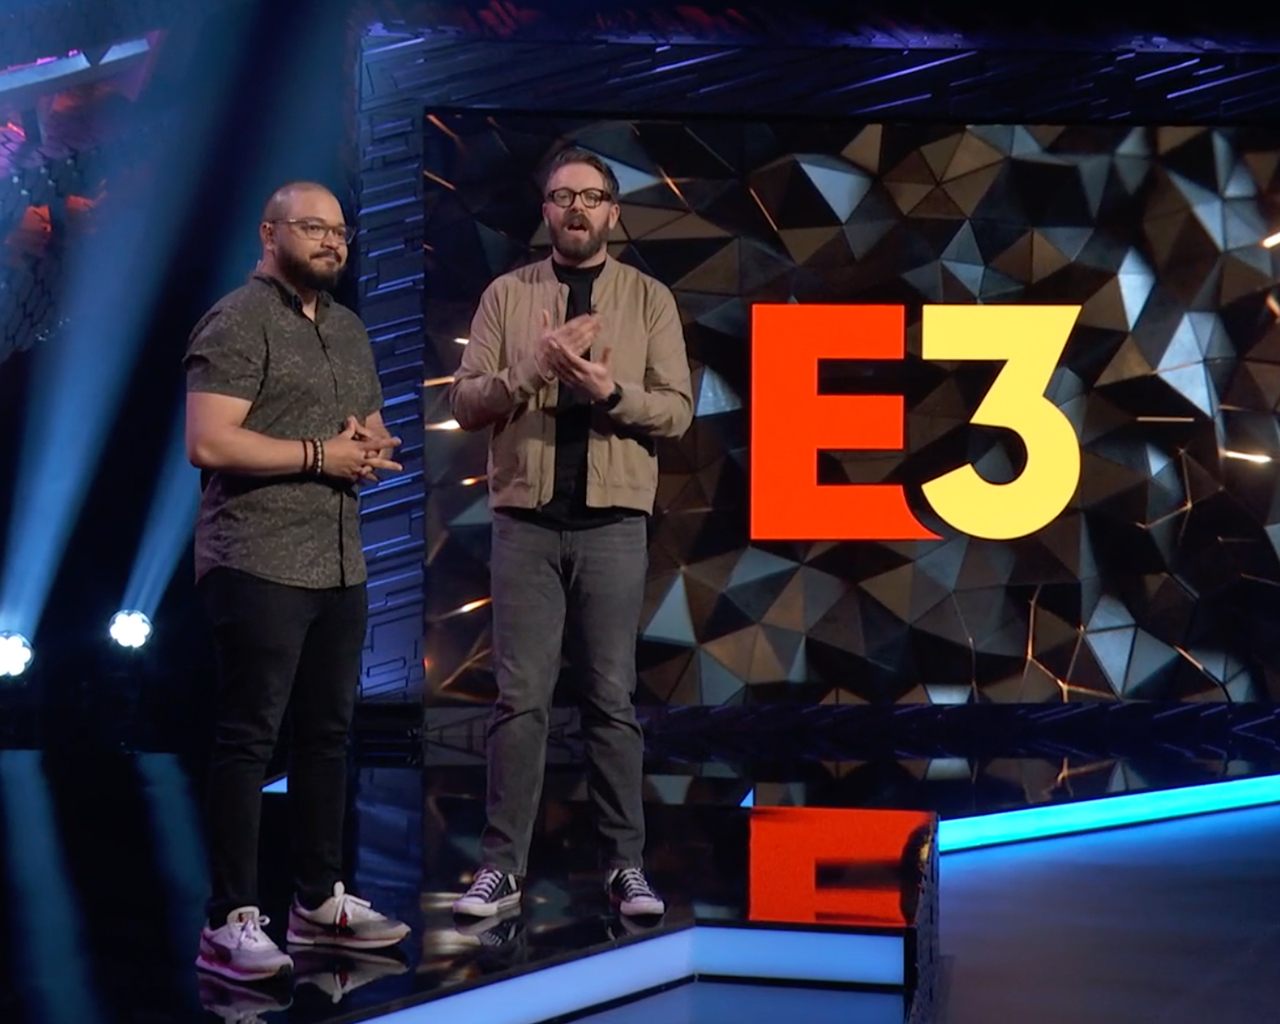 E3 2021 stage with logo on screen and hosts